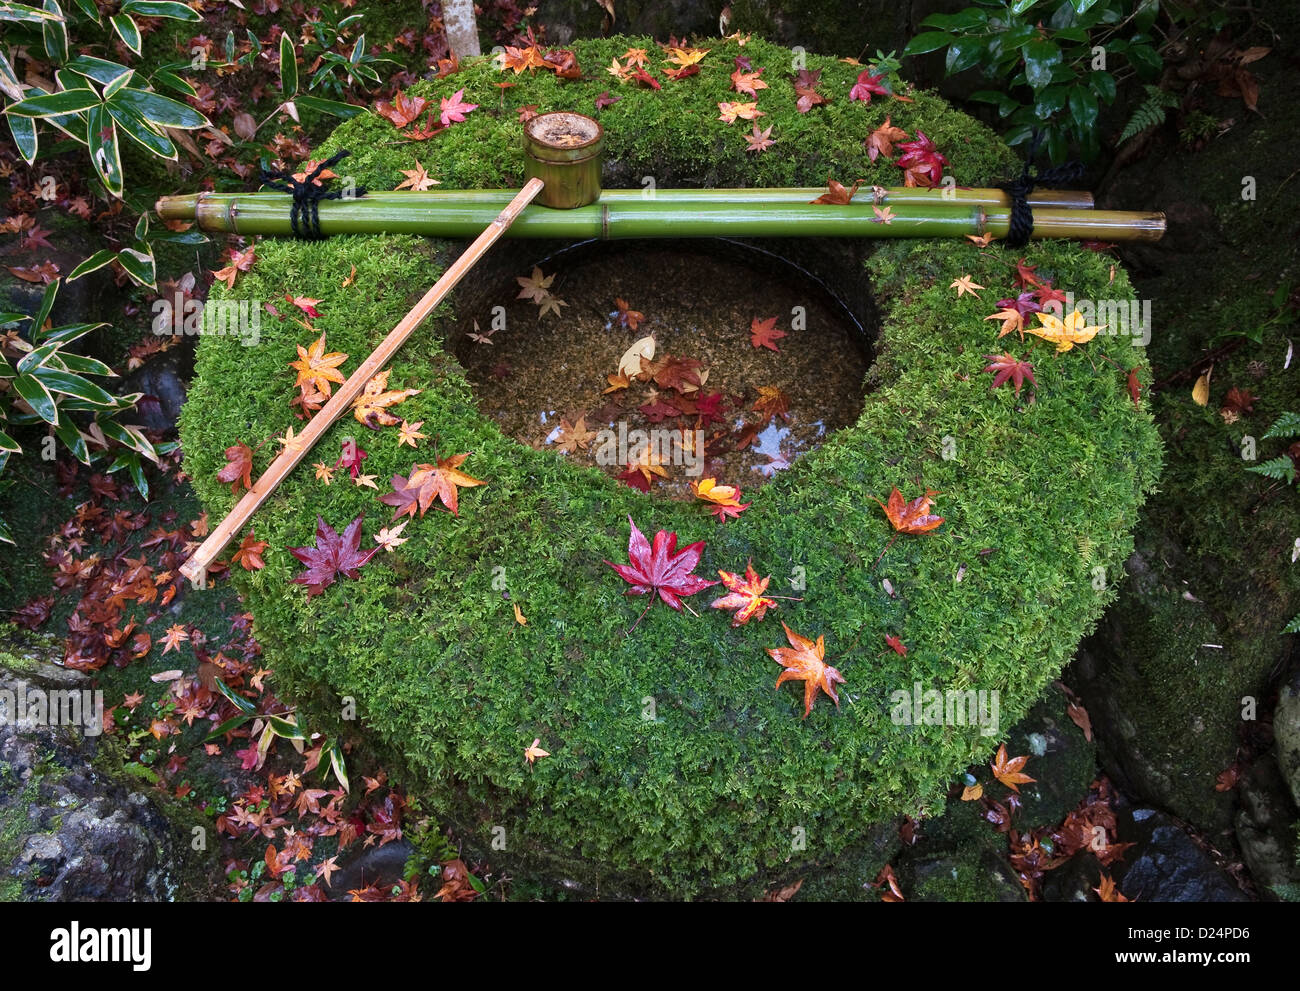 Kyoto, Japan. A tsukubai or water basin for ritual washing or purification at Koto-in Temple, seen in autumn - Stock Image